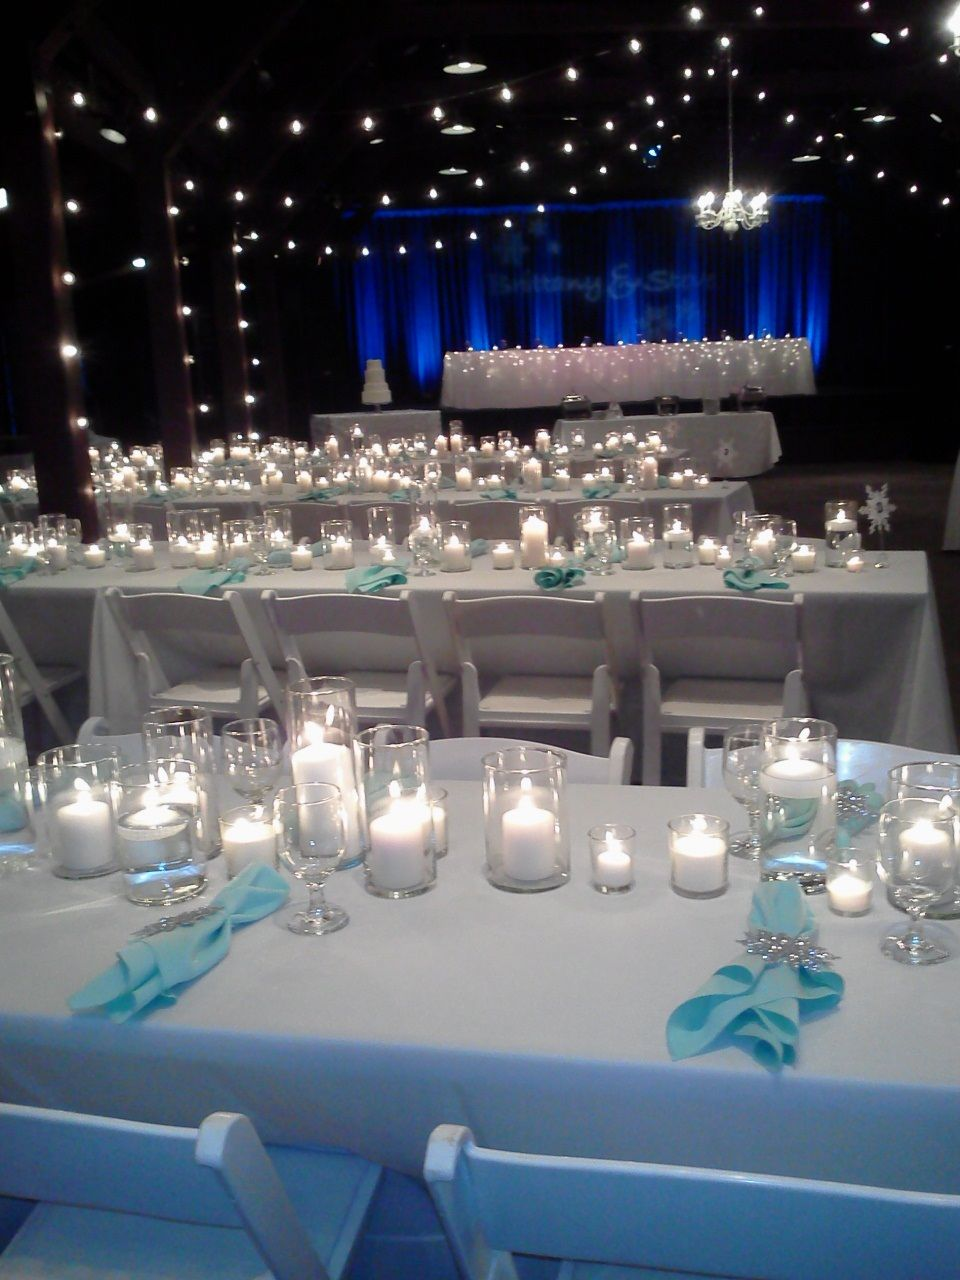 Look at these beautiful decorations from last weekend's Winter Wonderland wedding!